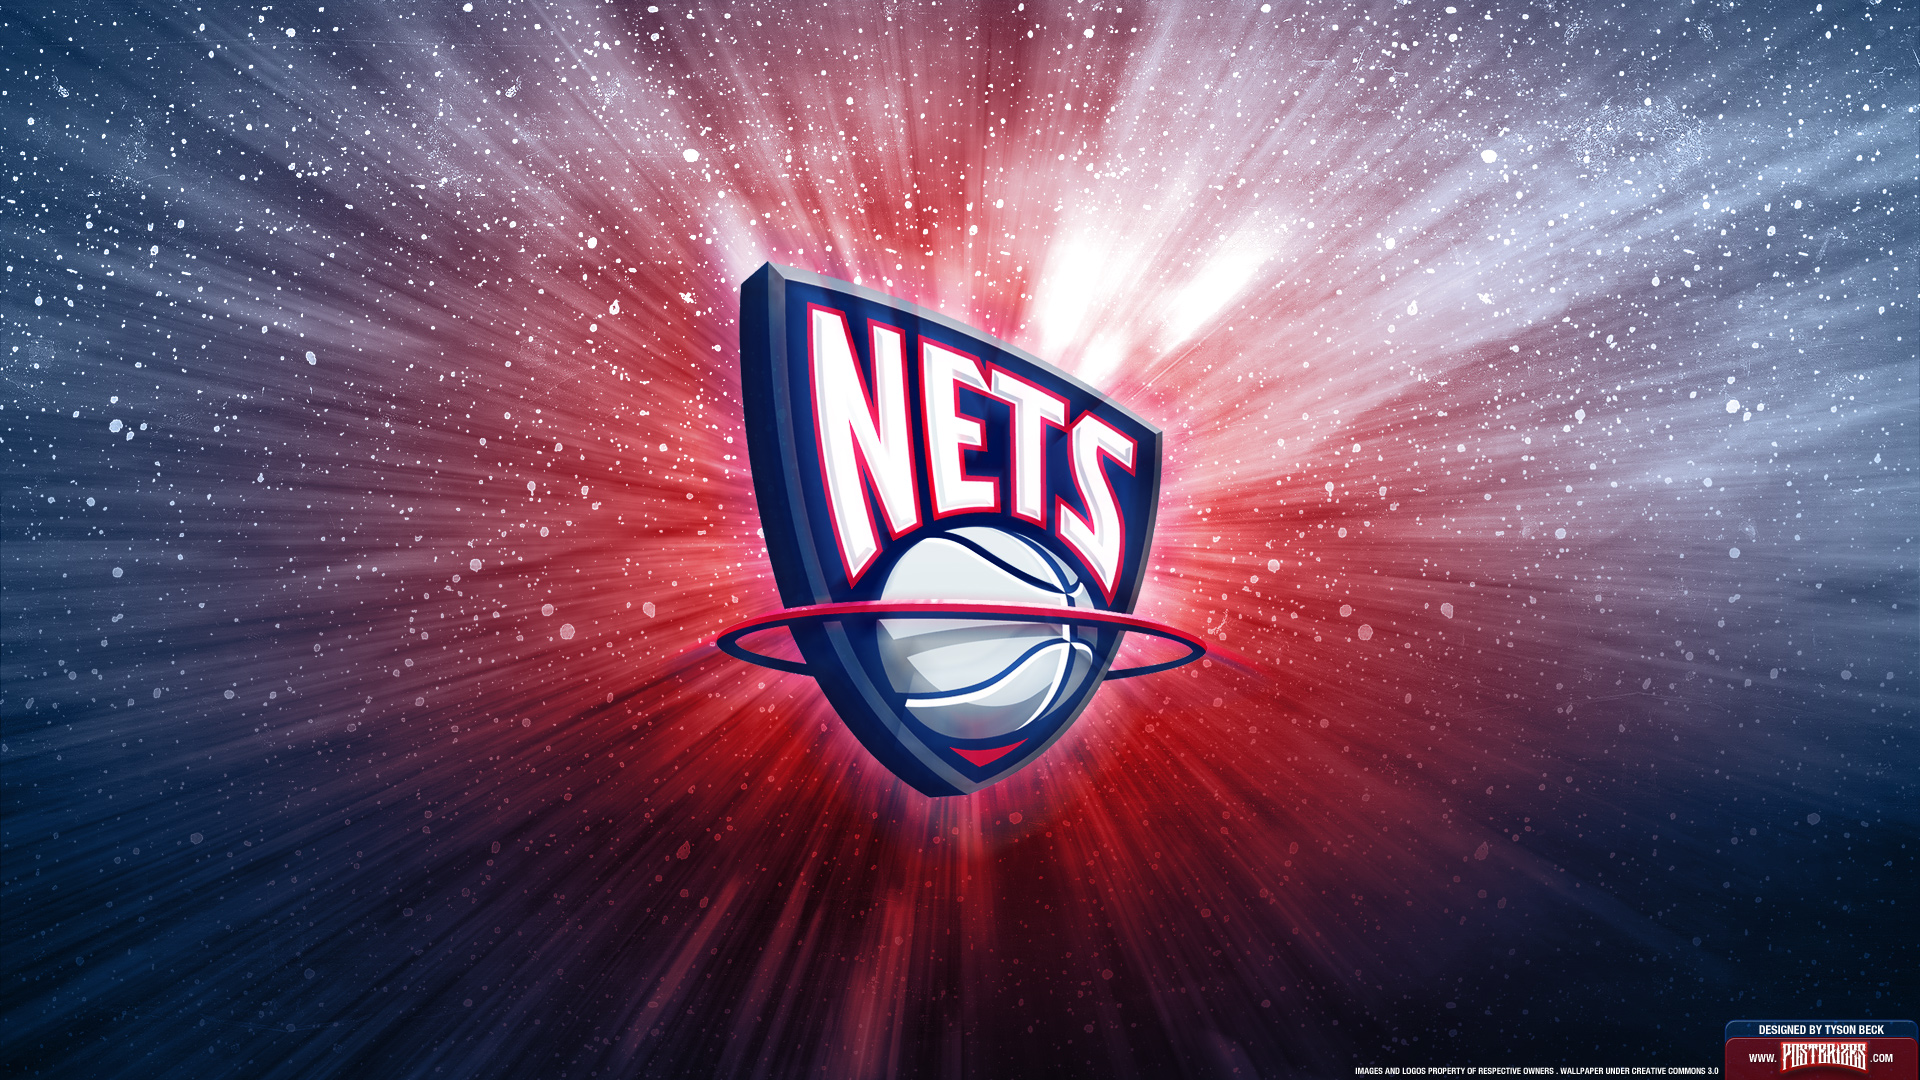 Pics Photos - New Jersey Nets Mobile Wallpaper